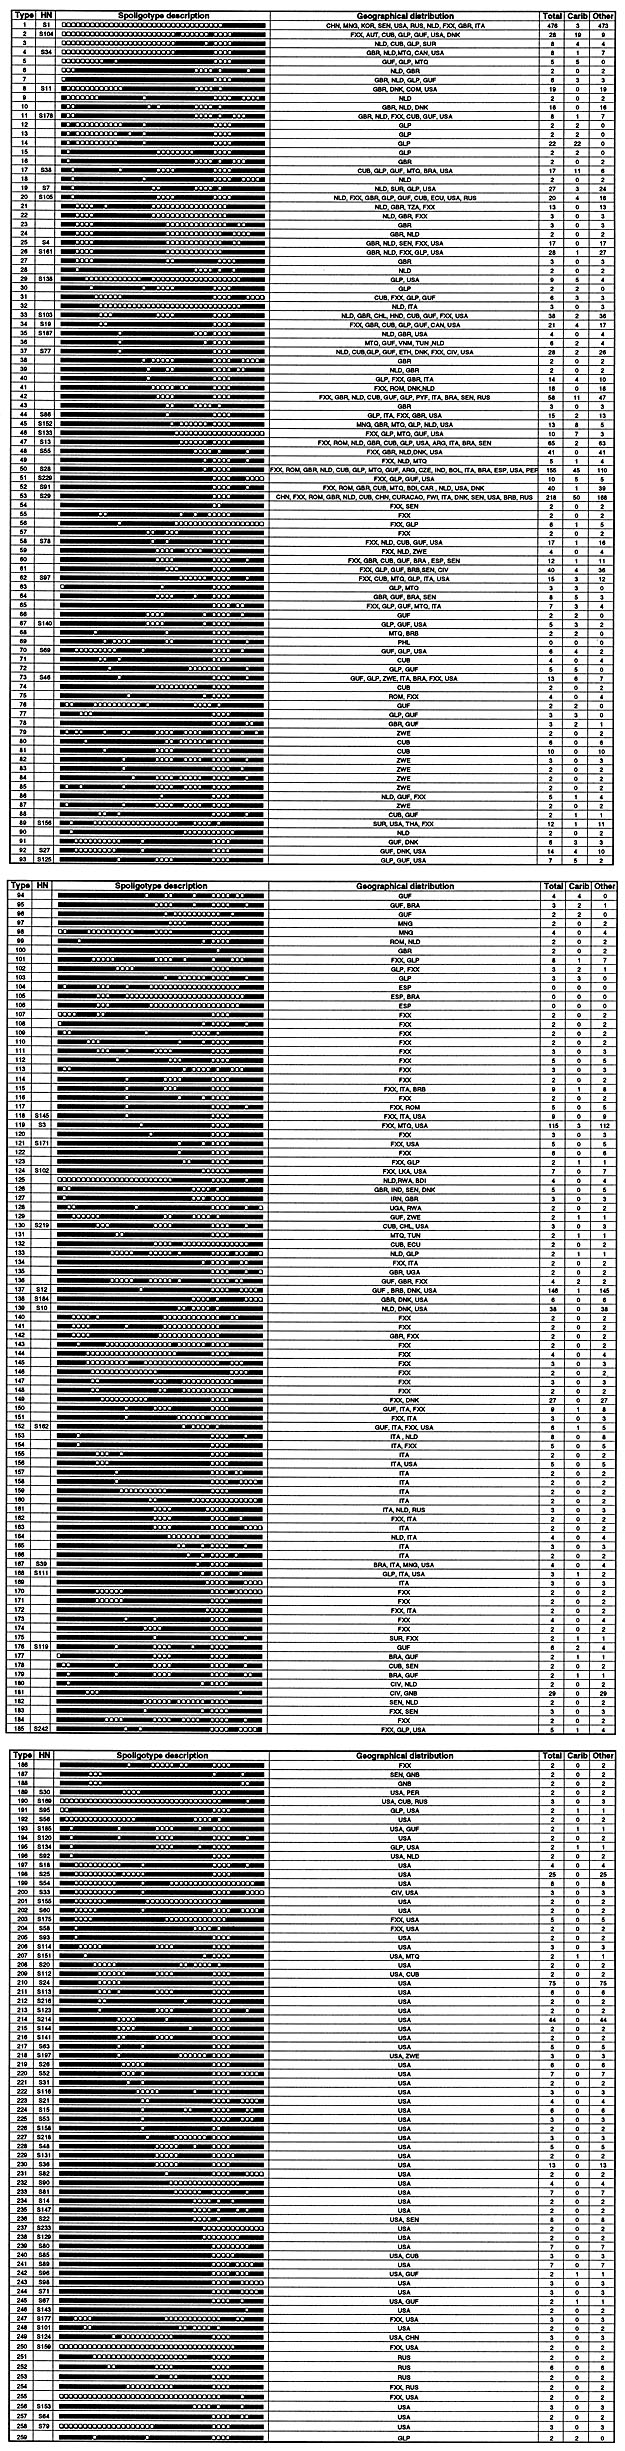 Description of the 259 shared types of Mycobacterium tuberculosis with their nomenclatures (for data source, see Table 1). First column (type): number attribution for each spoligotype in our database. Second column (HN): numbers for some patterns described recently in Houston, Texas (12). Third column (spoligotype description): patterns obtained (8). Fourth column (geographic distribution): origin of isolates according to the original publication as ISO-code 3166. Fifth column (total): total num